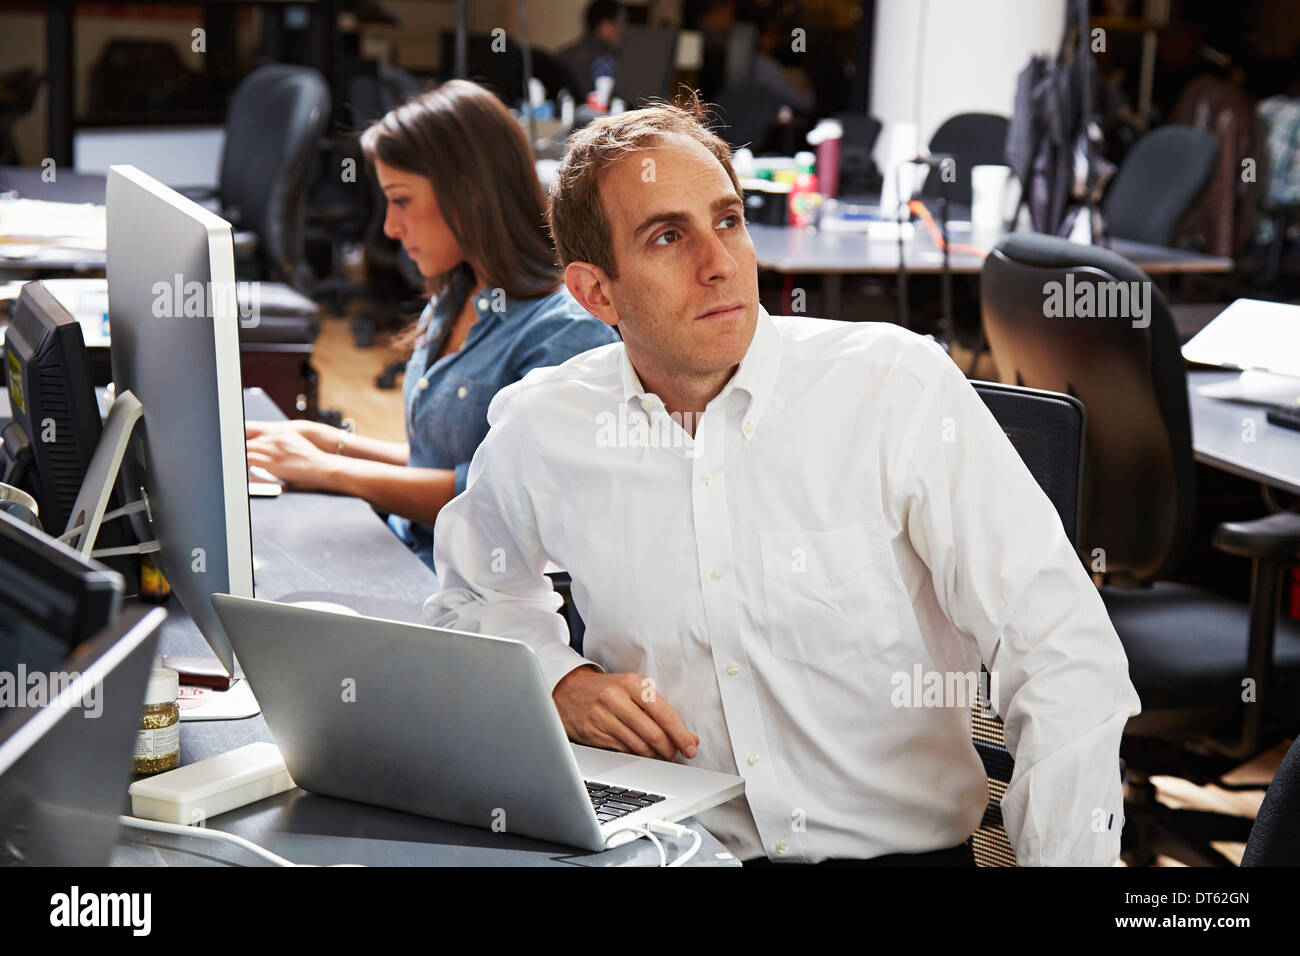 Mid adult man using laptop in office Photo Stock